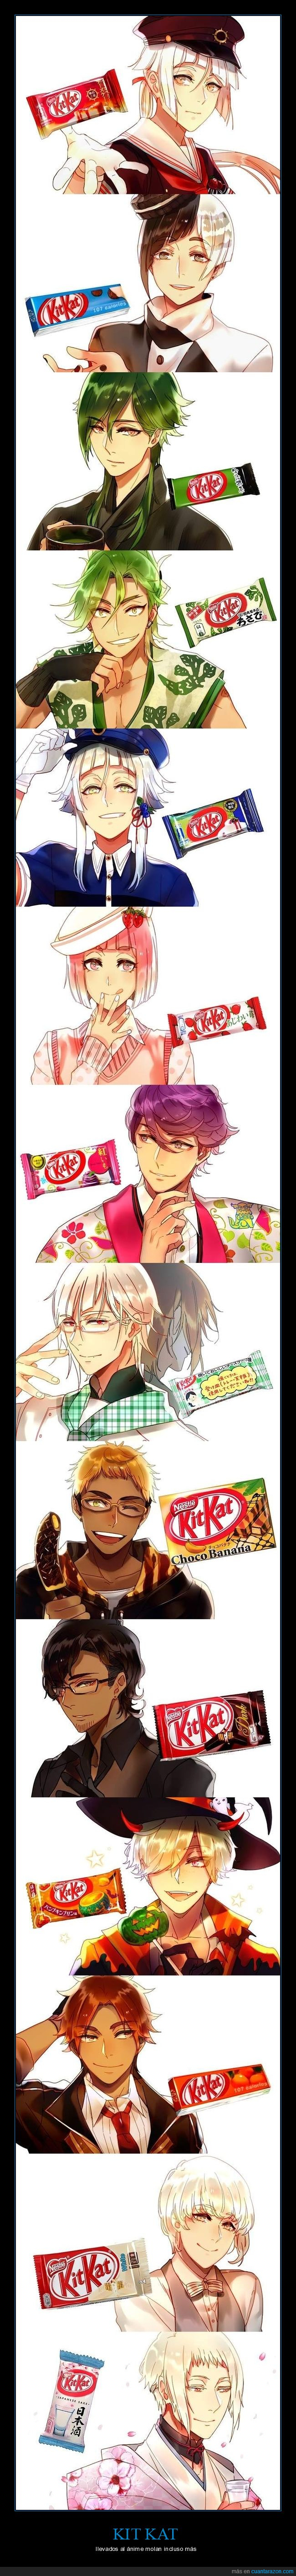 anime,kit kat,llevar,riconudo